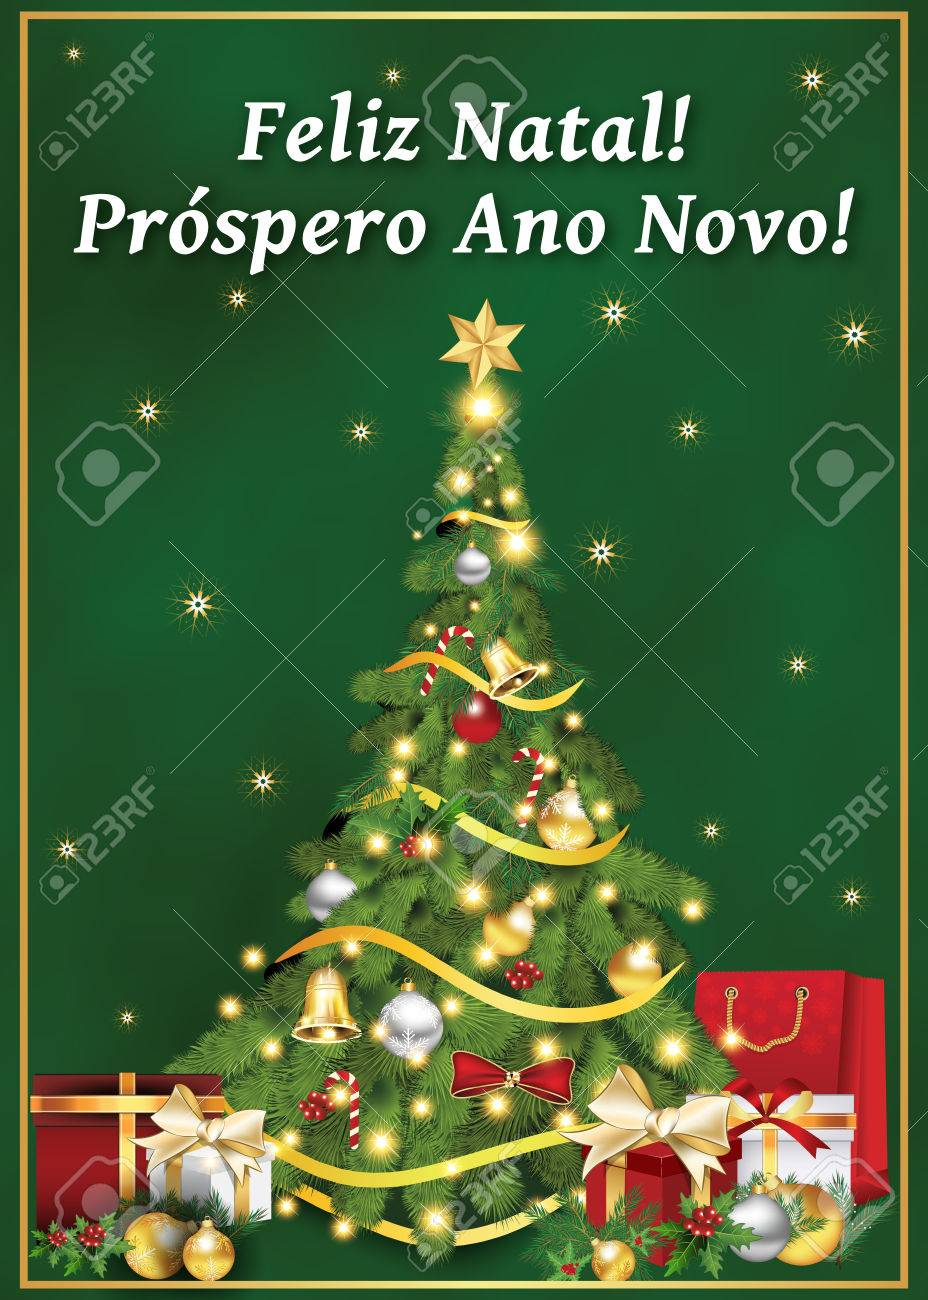 Portuguese Business Greeting Card For Winter Holiday Text